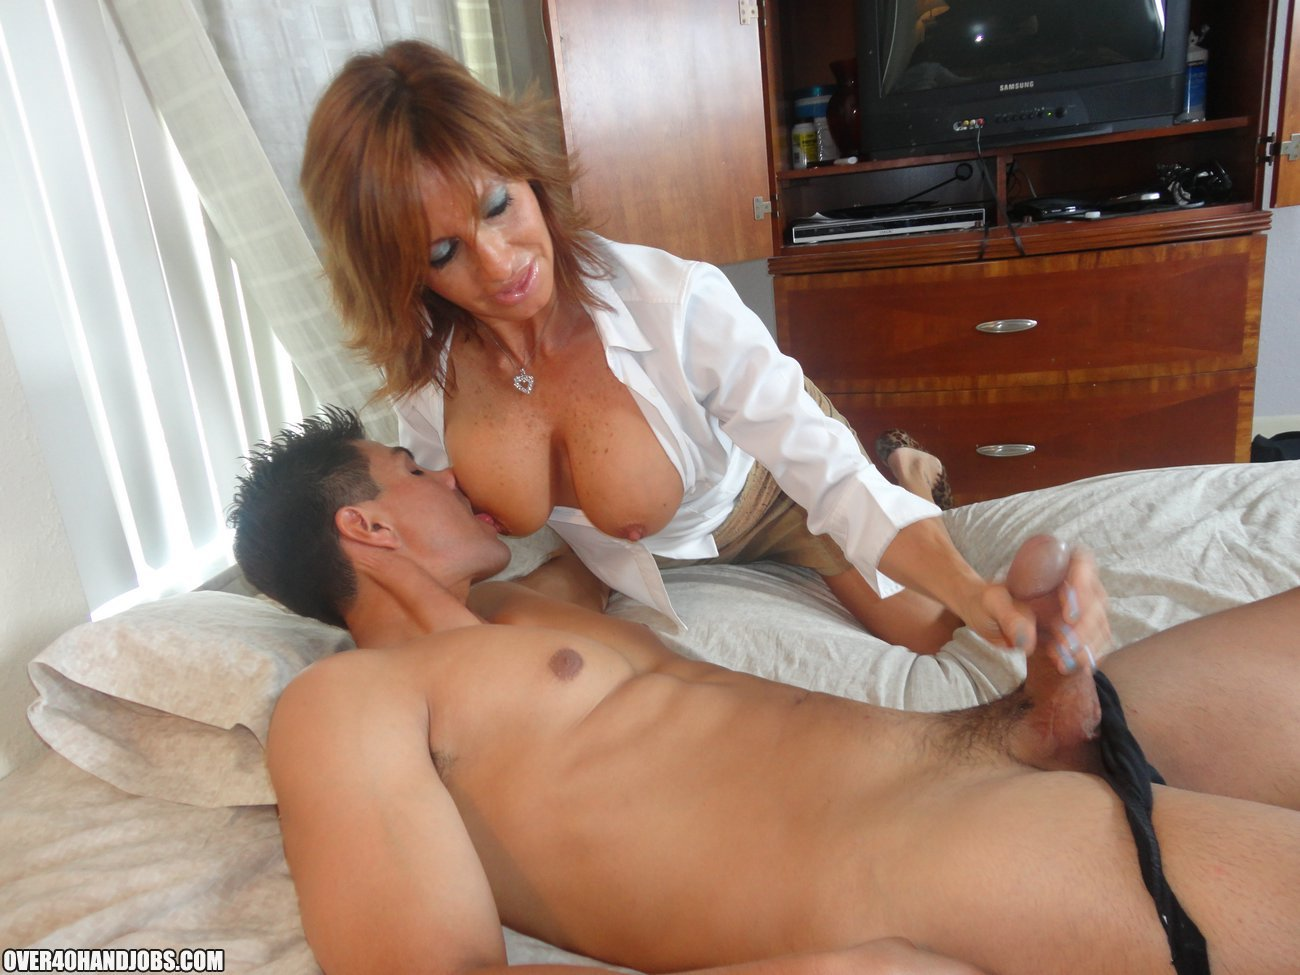 Milf mature sexy housewives beauty handjob porn clips